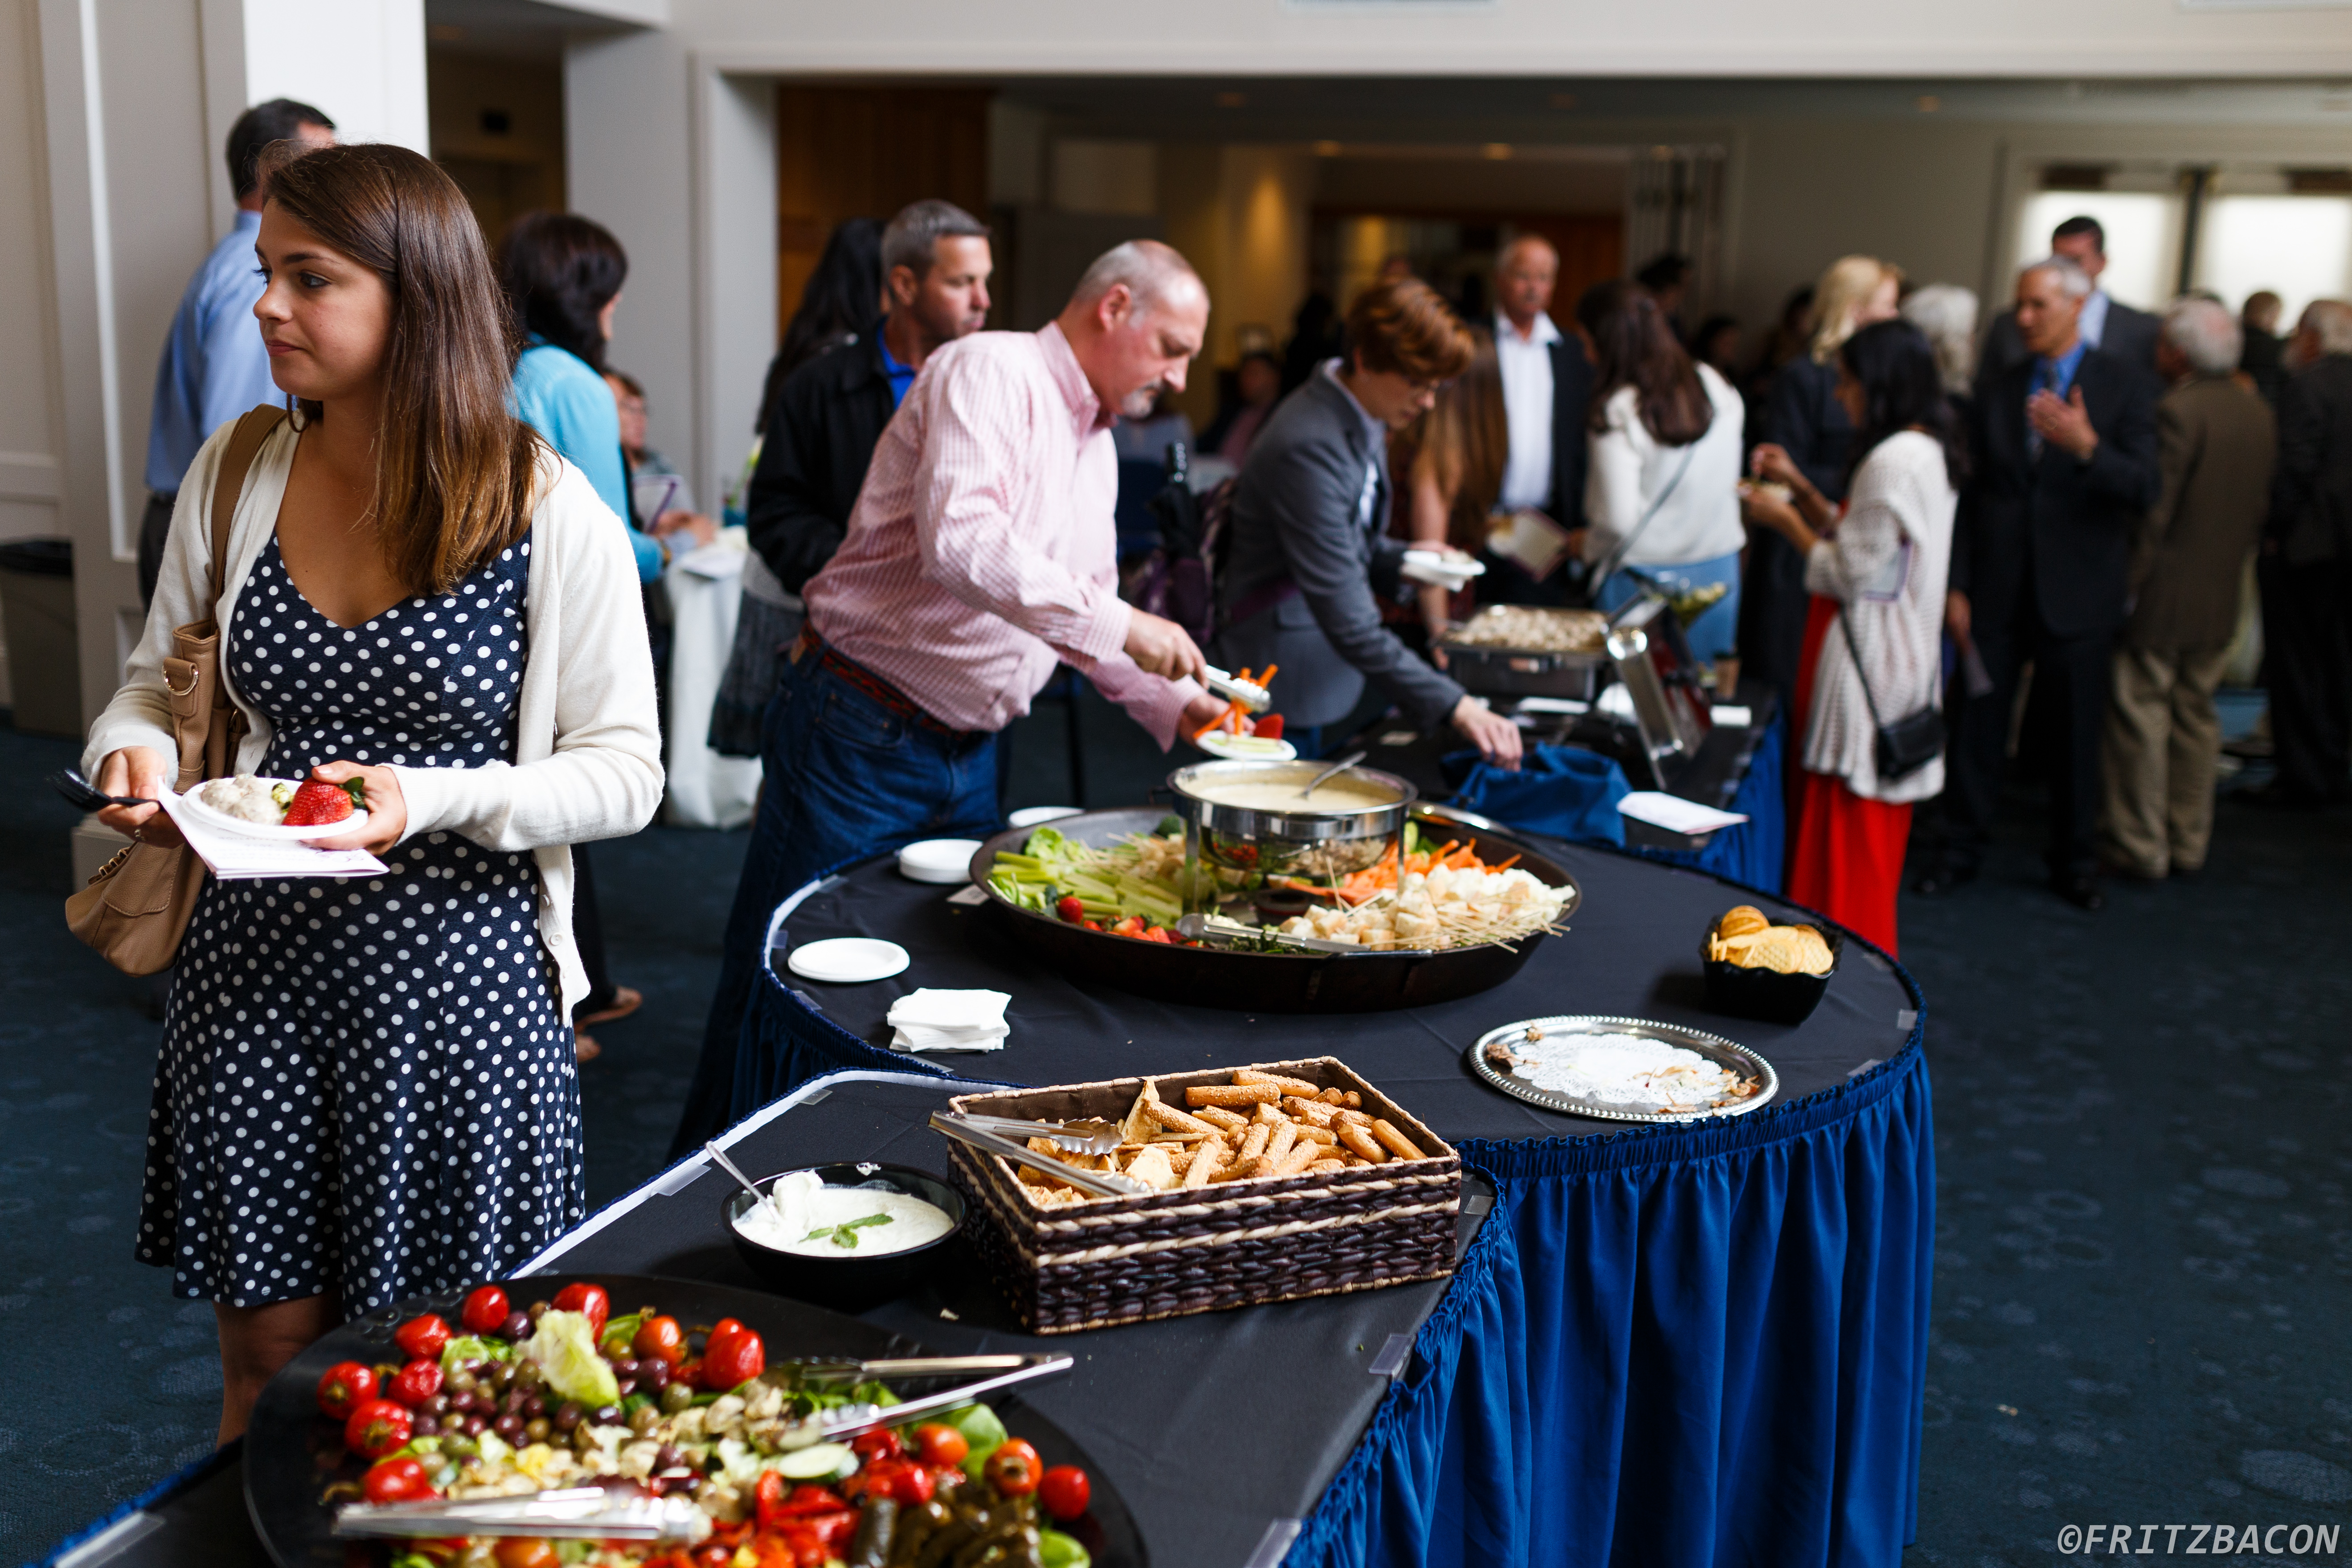 Guests enjoying catering